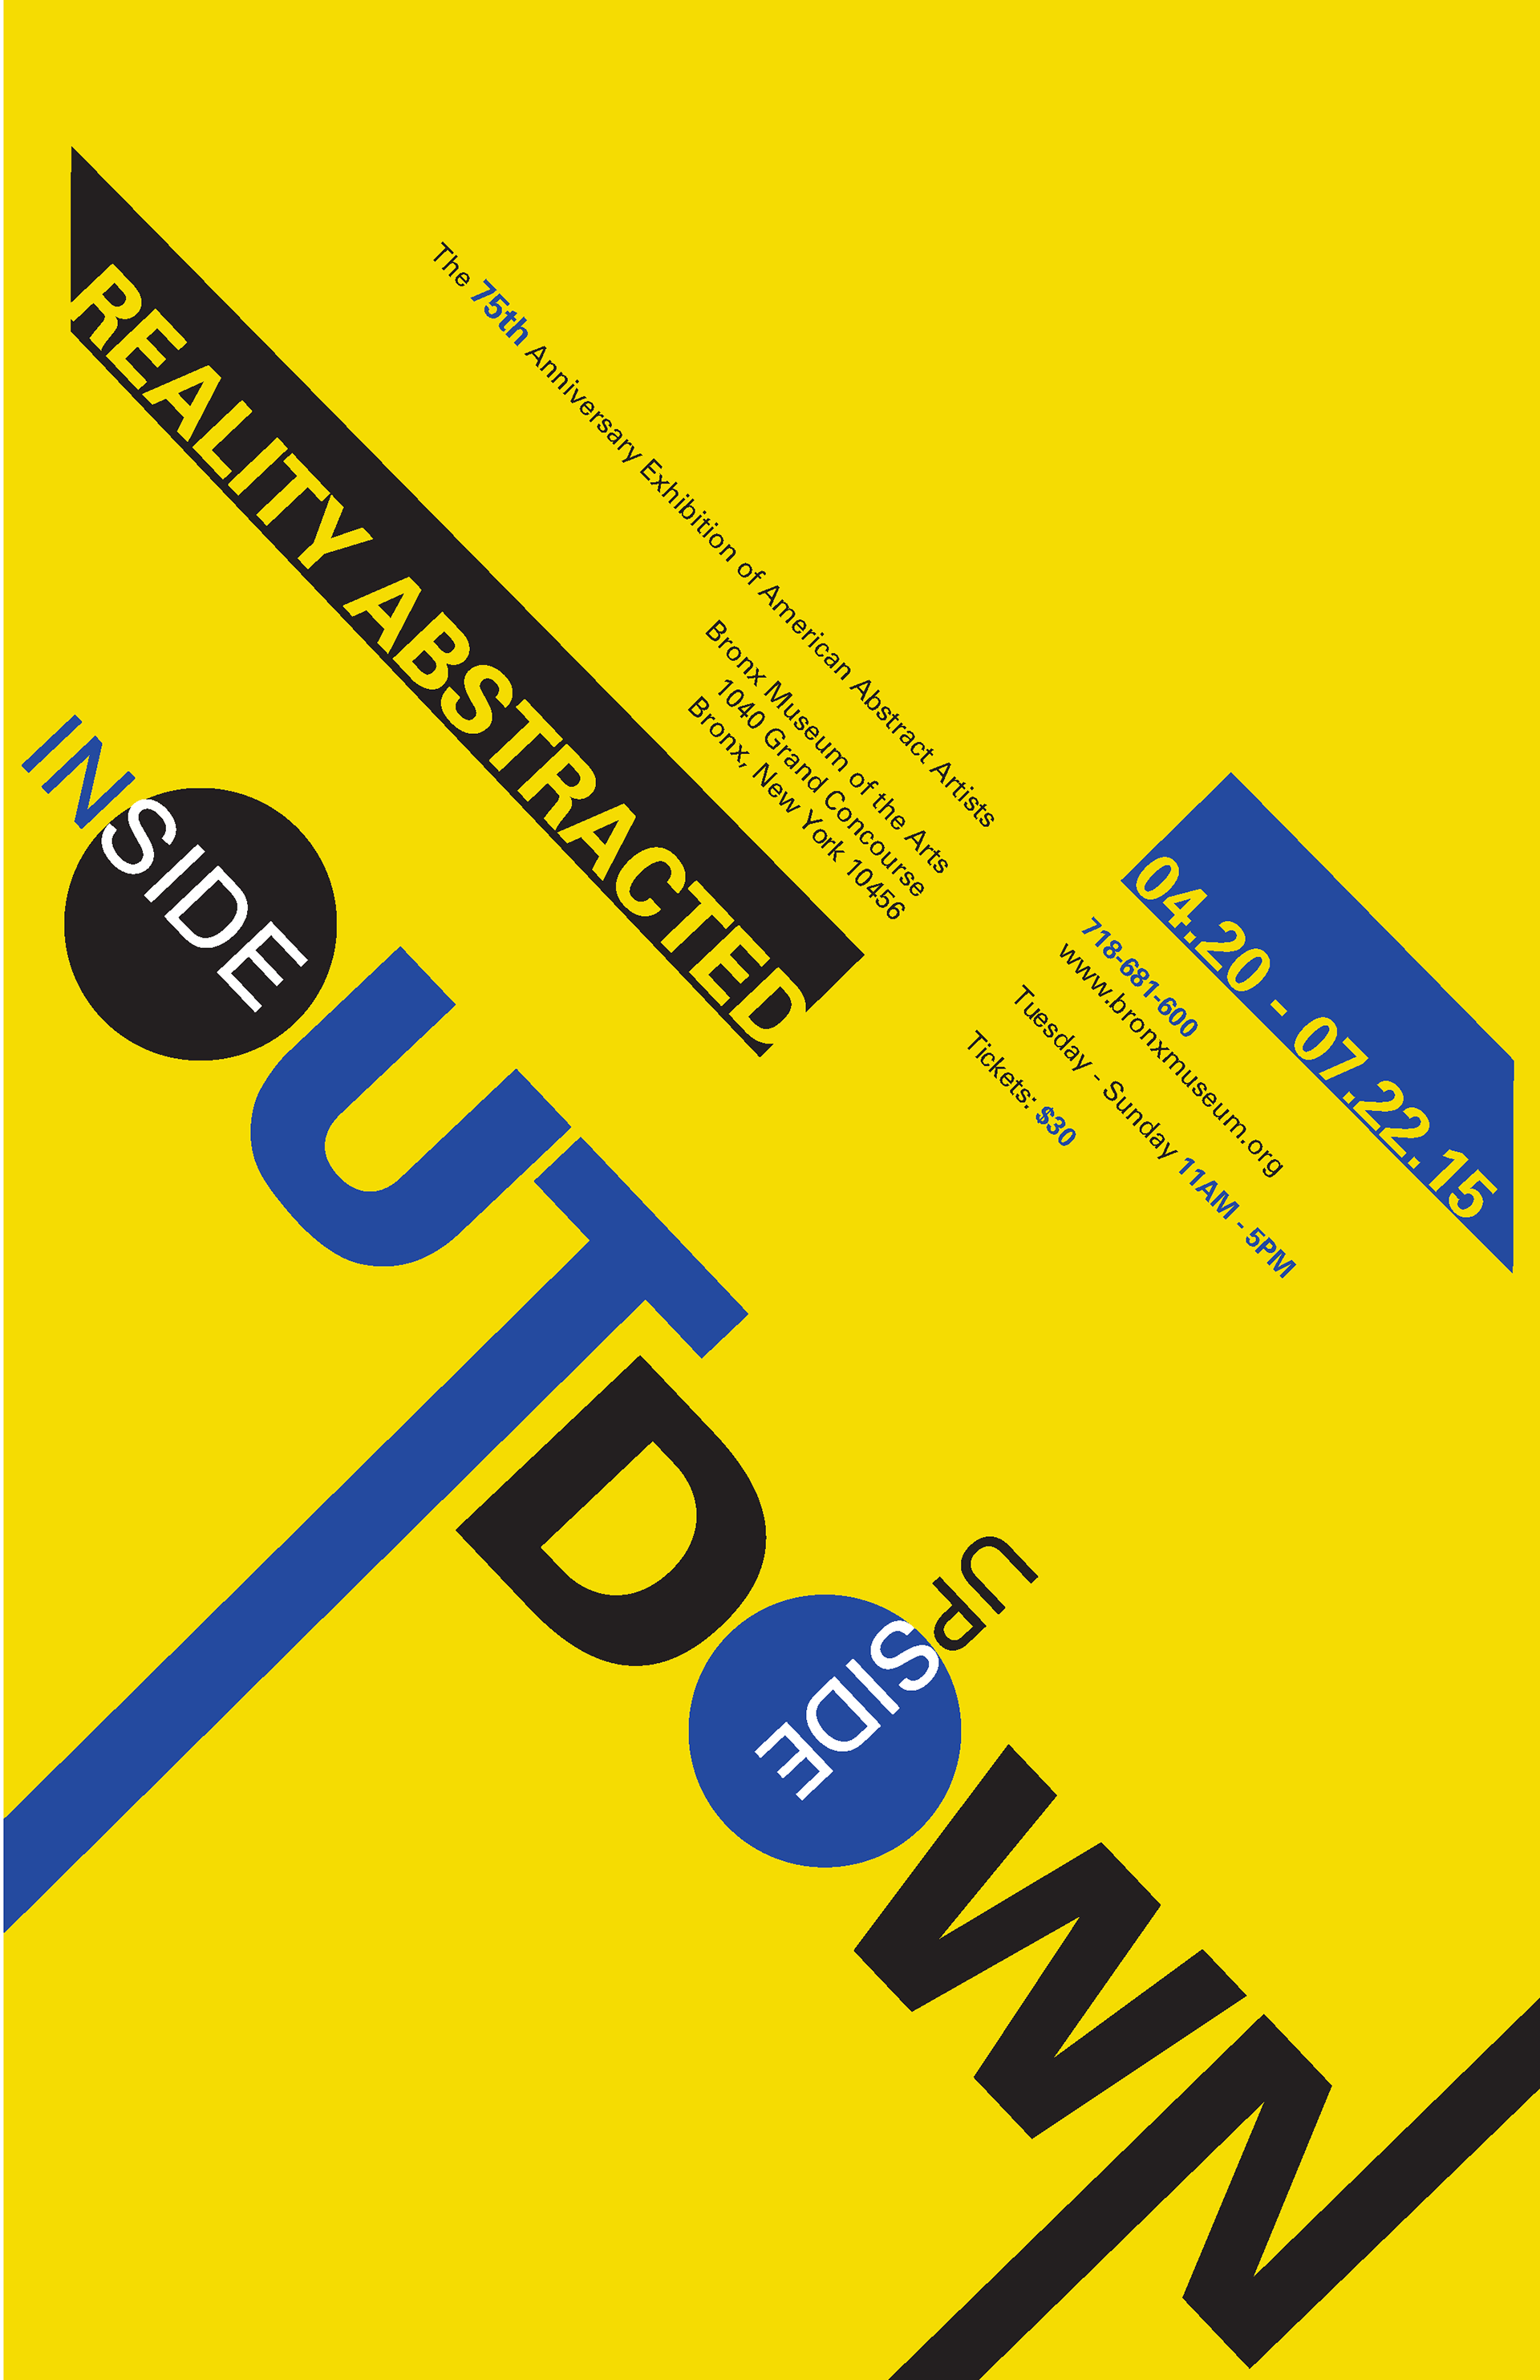 A Poster Design For An Exhibition Called Inside Out Upside Down The Goal Was To Create That Translates Feeling Of Abstraction Through Type